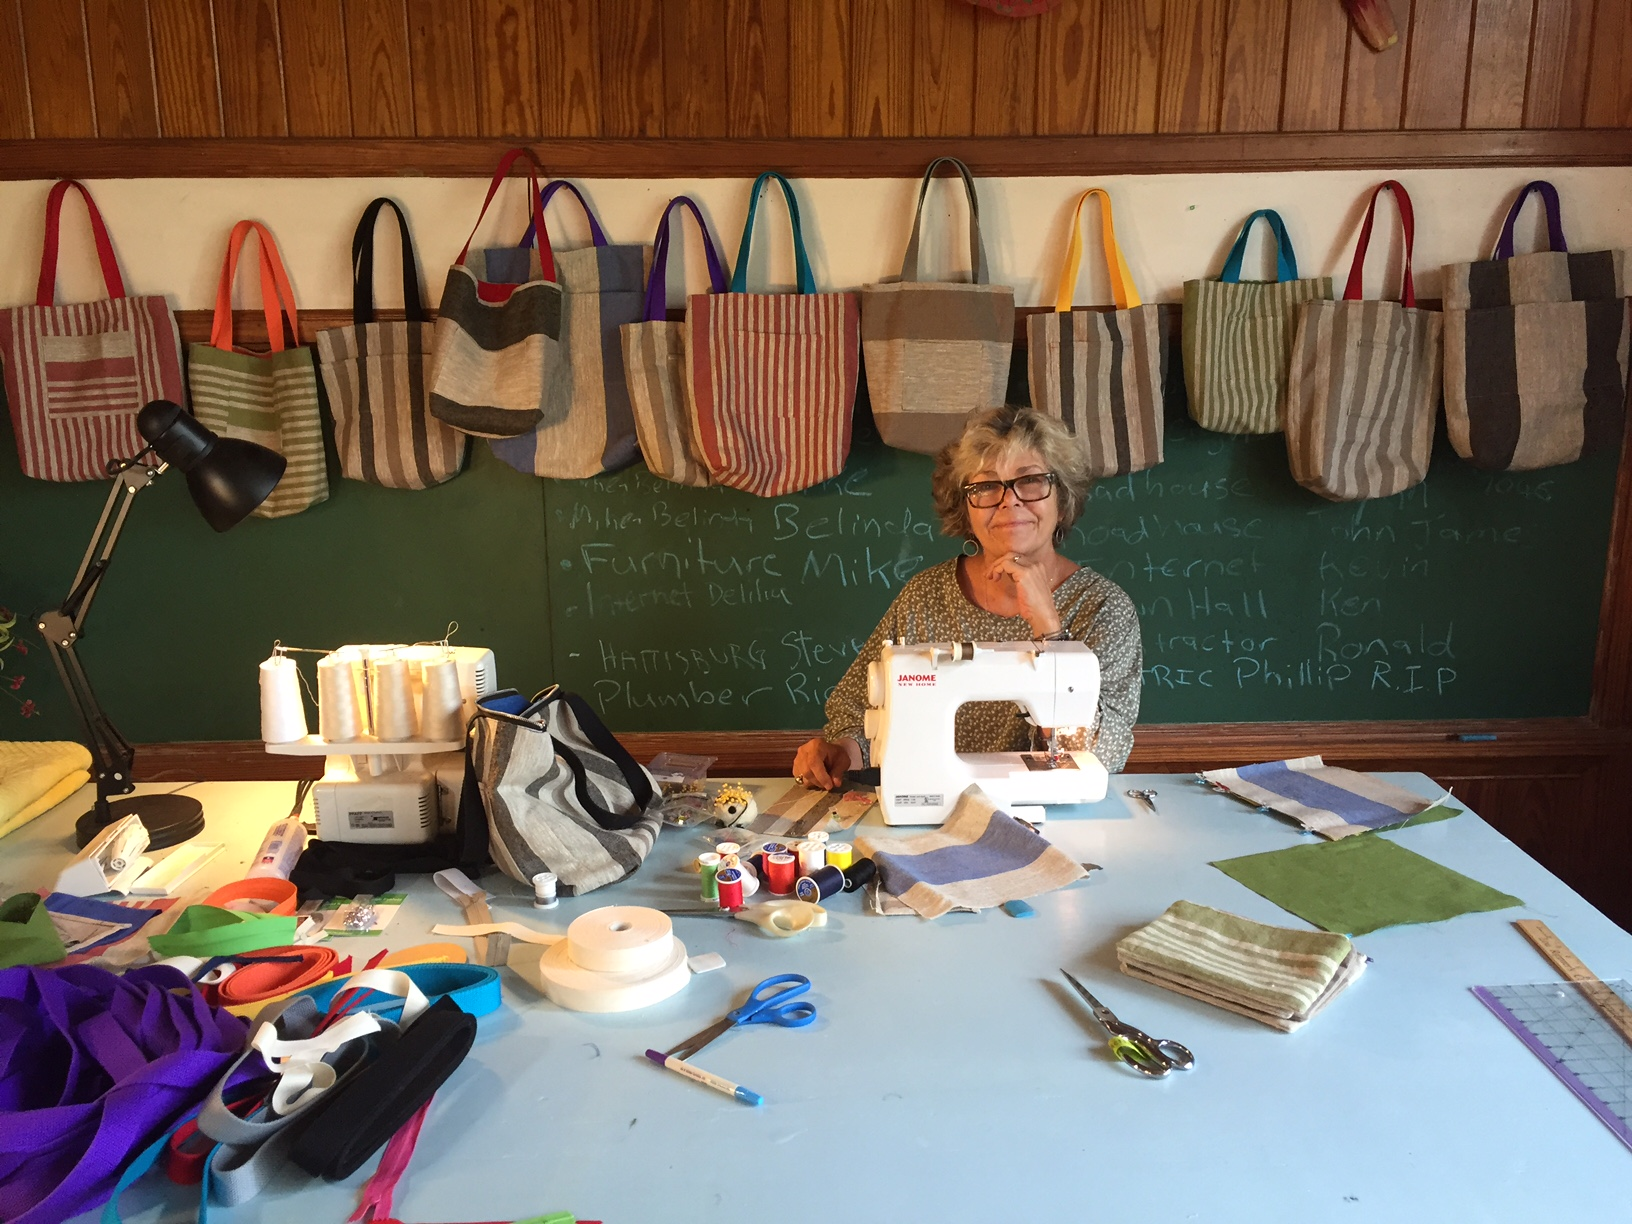 Kate in the studio, back and forth between her sewing machine and serger to make her linen tote bags.